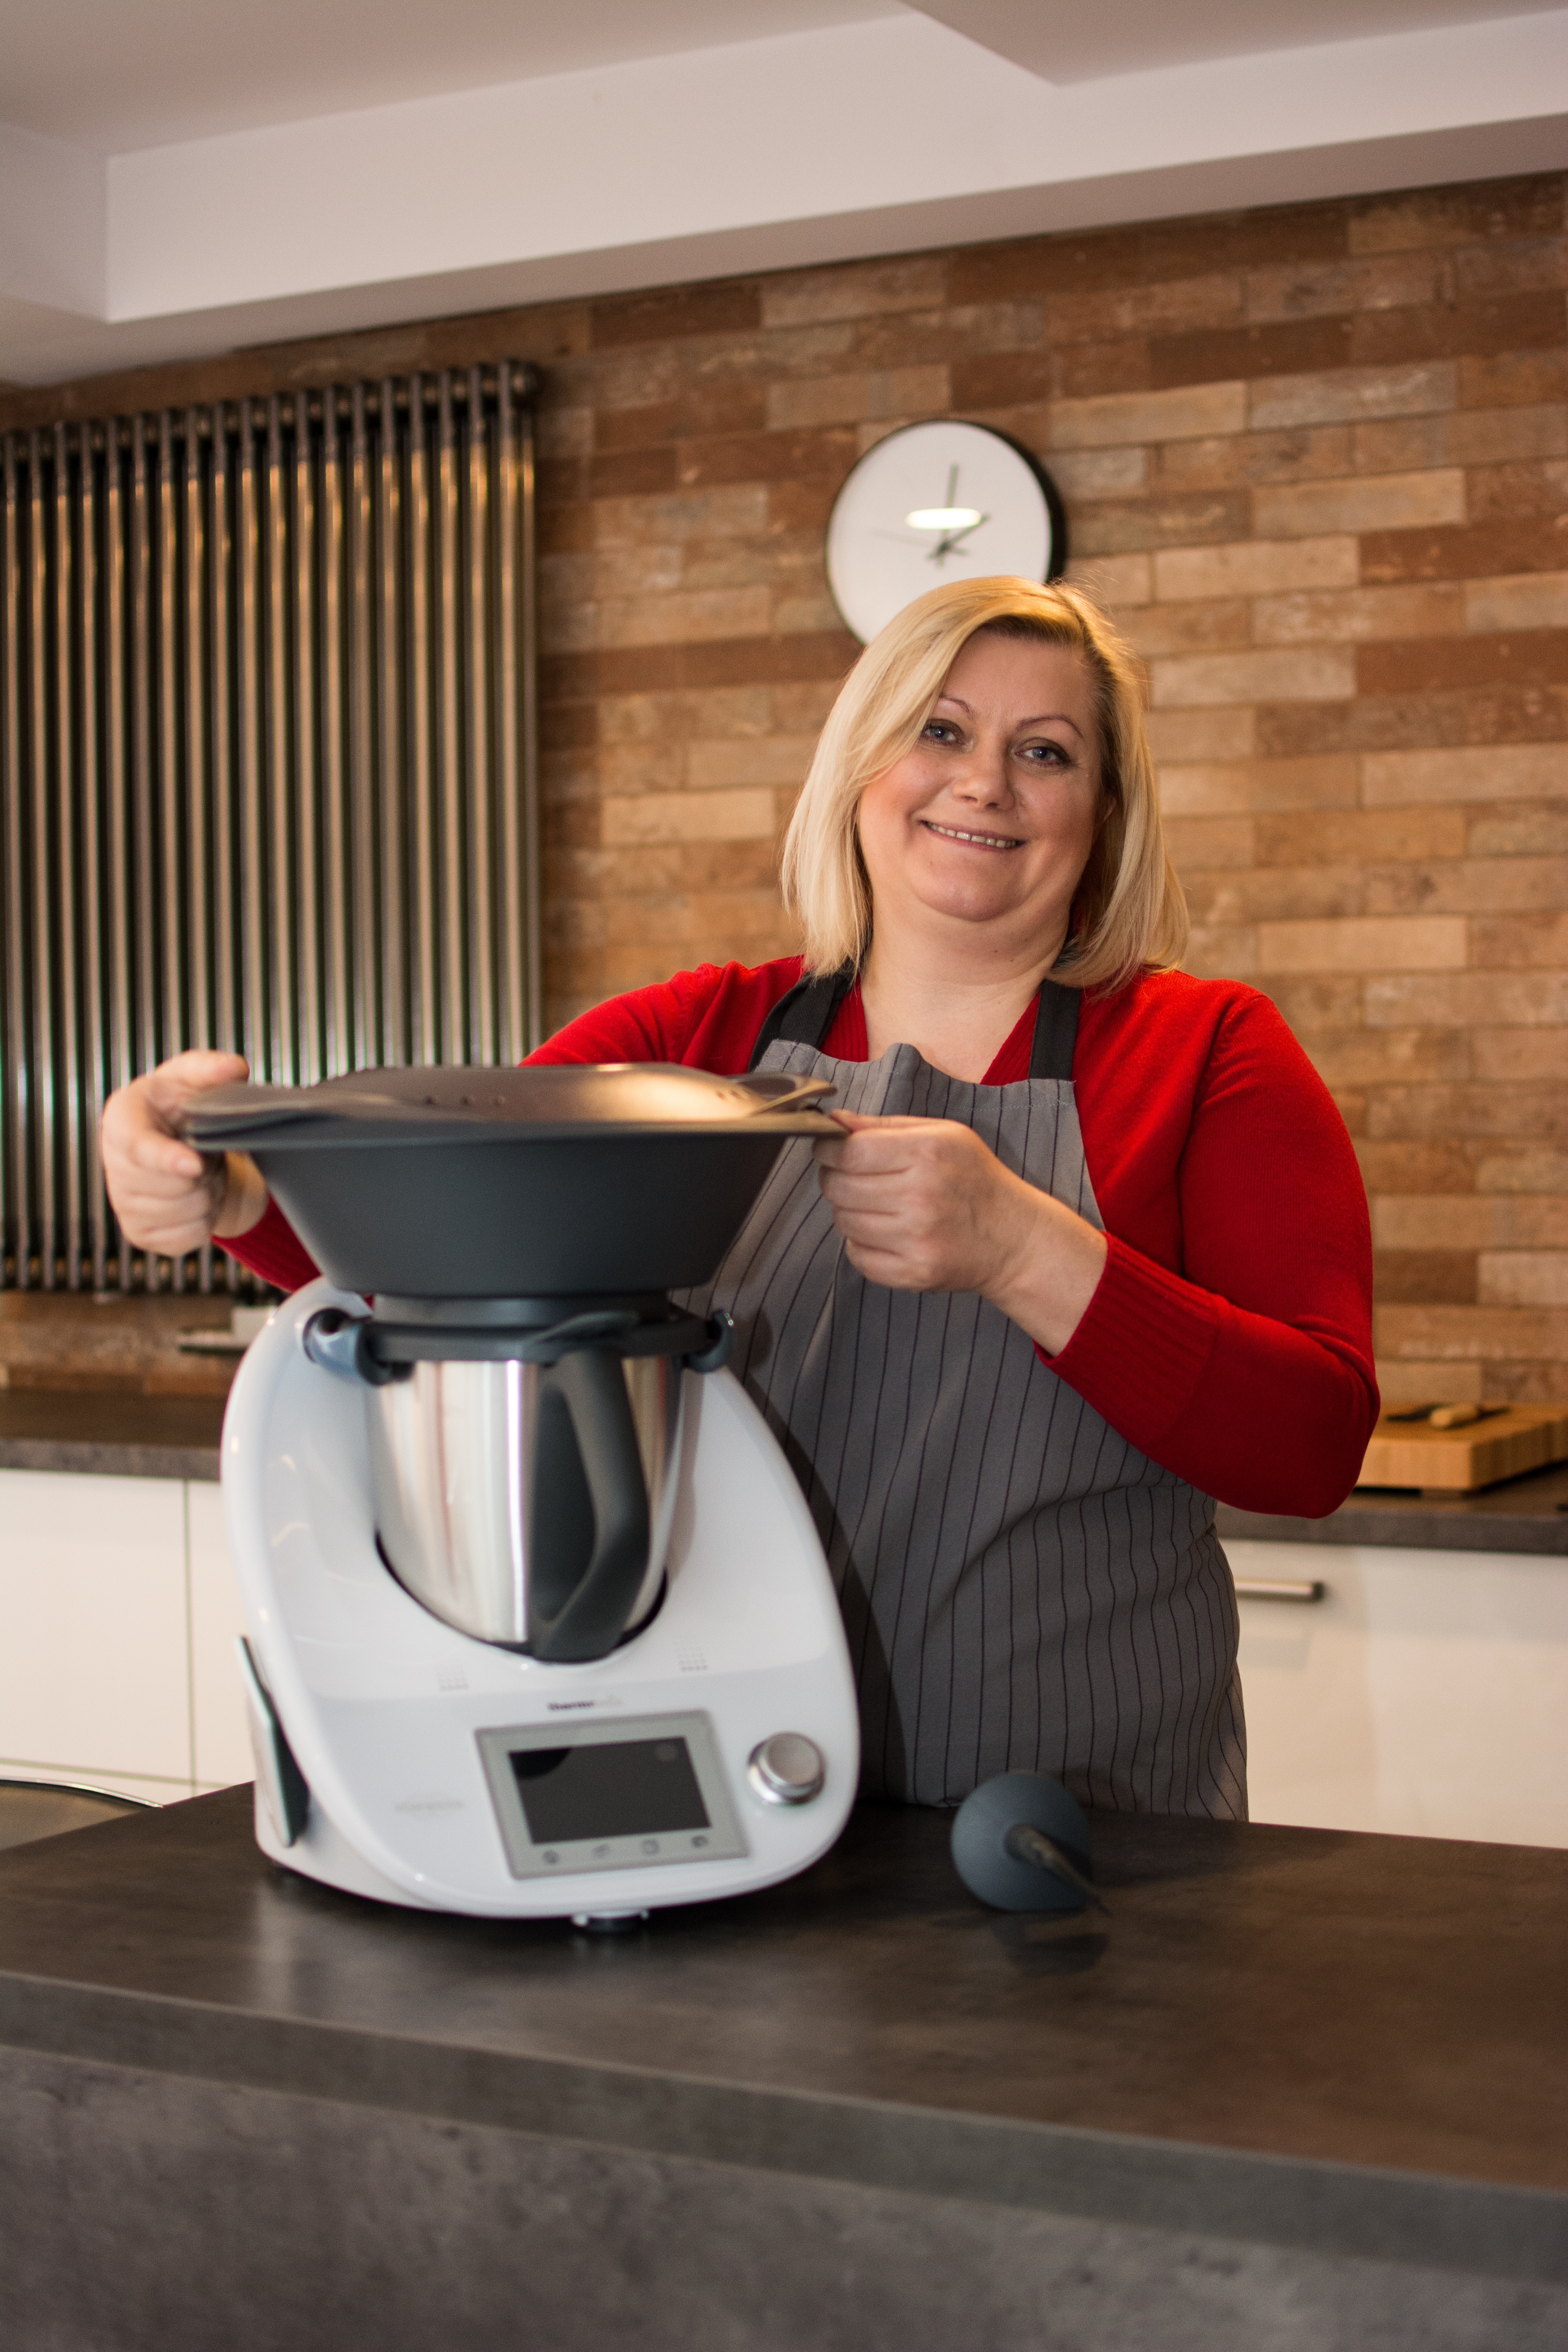 Thermomix Superbrands Poland's Choice